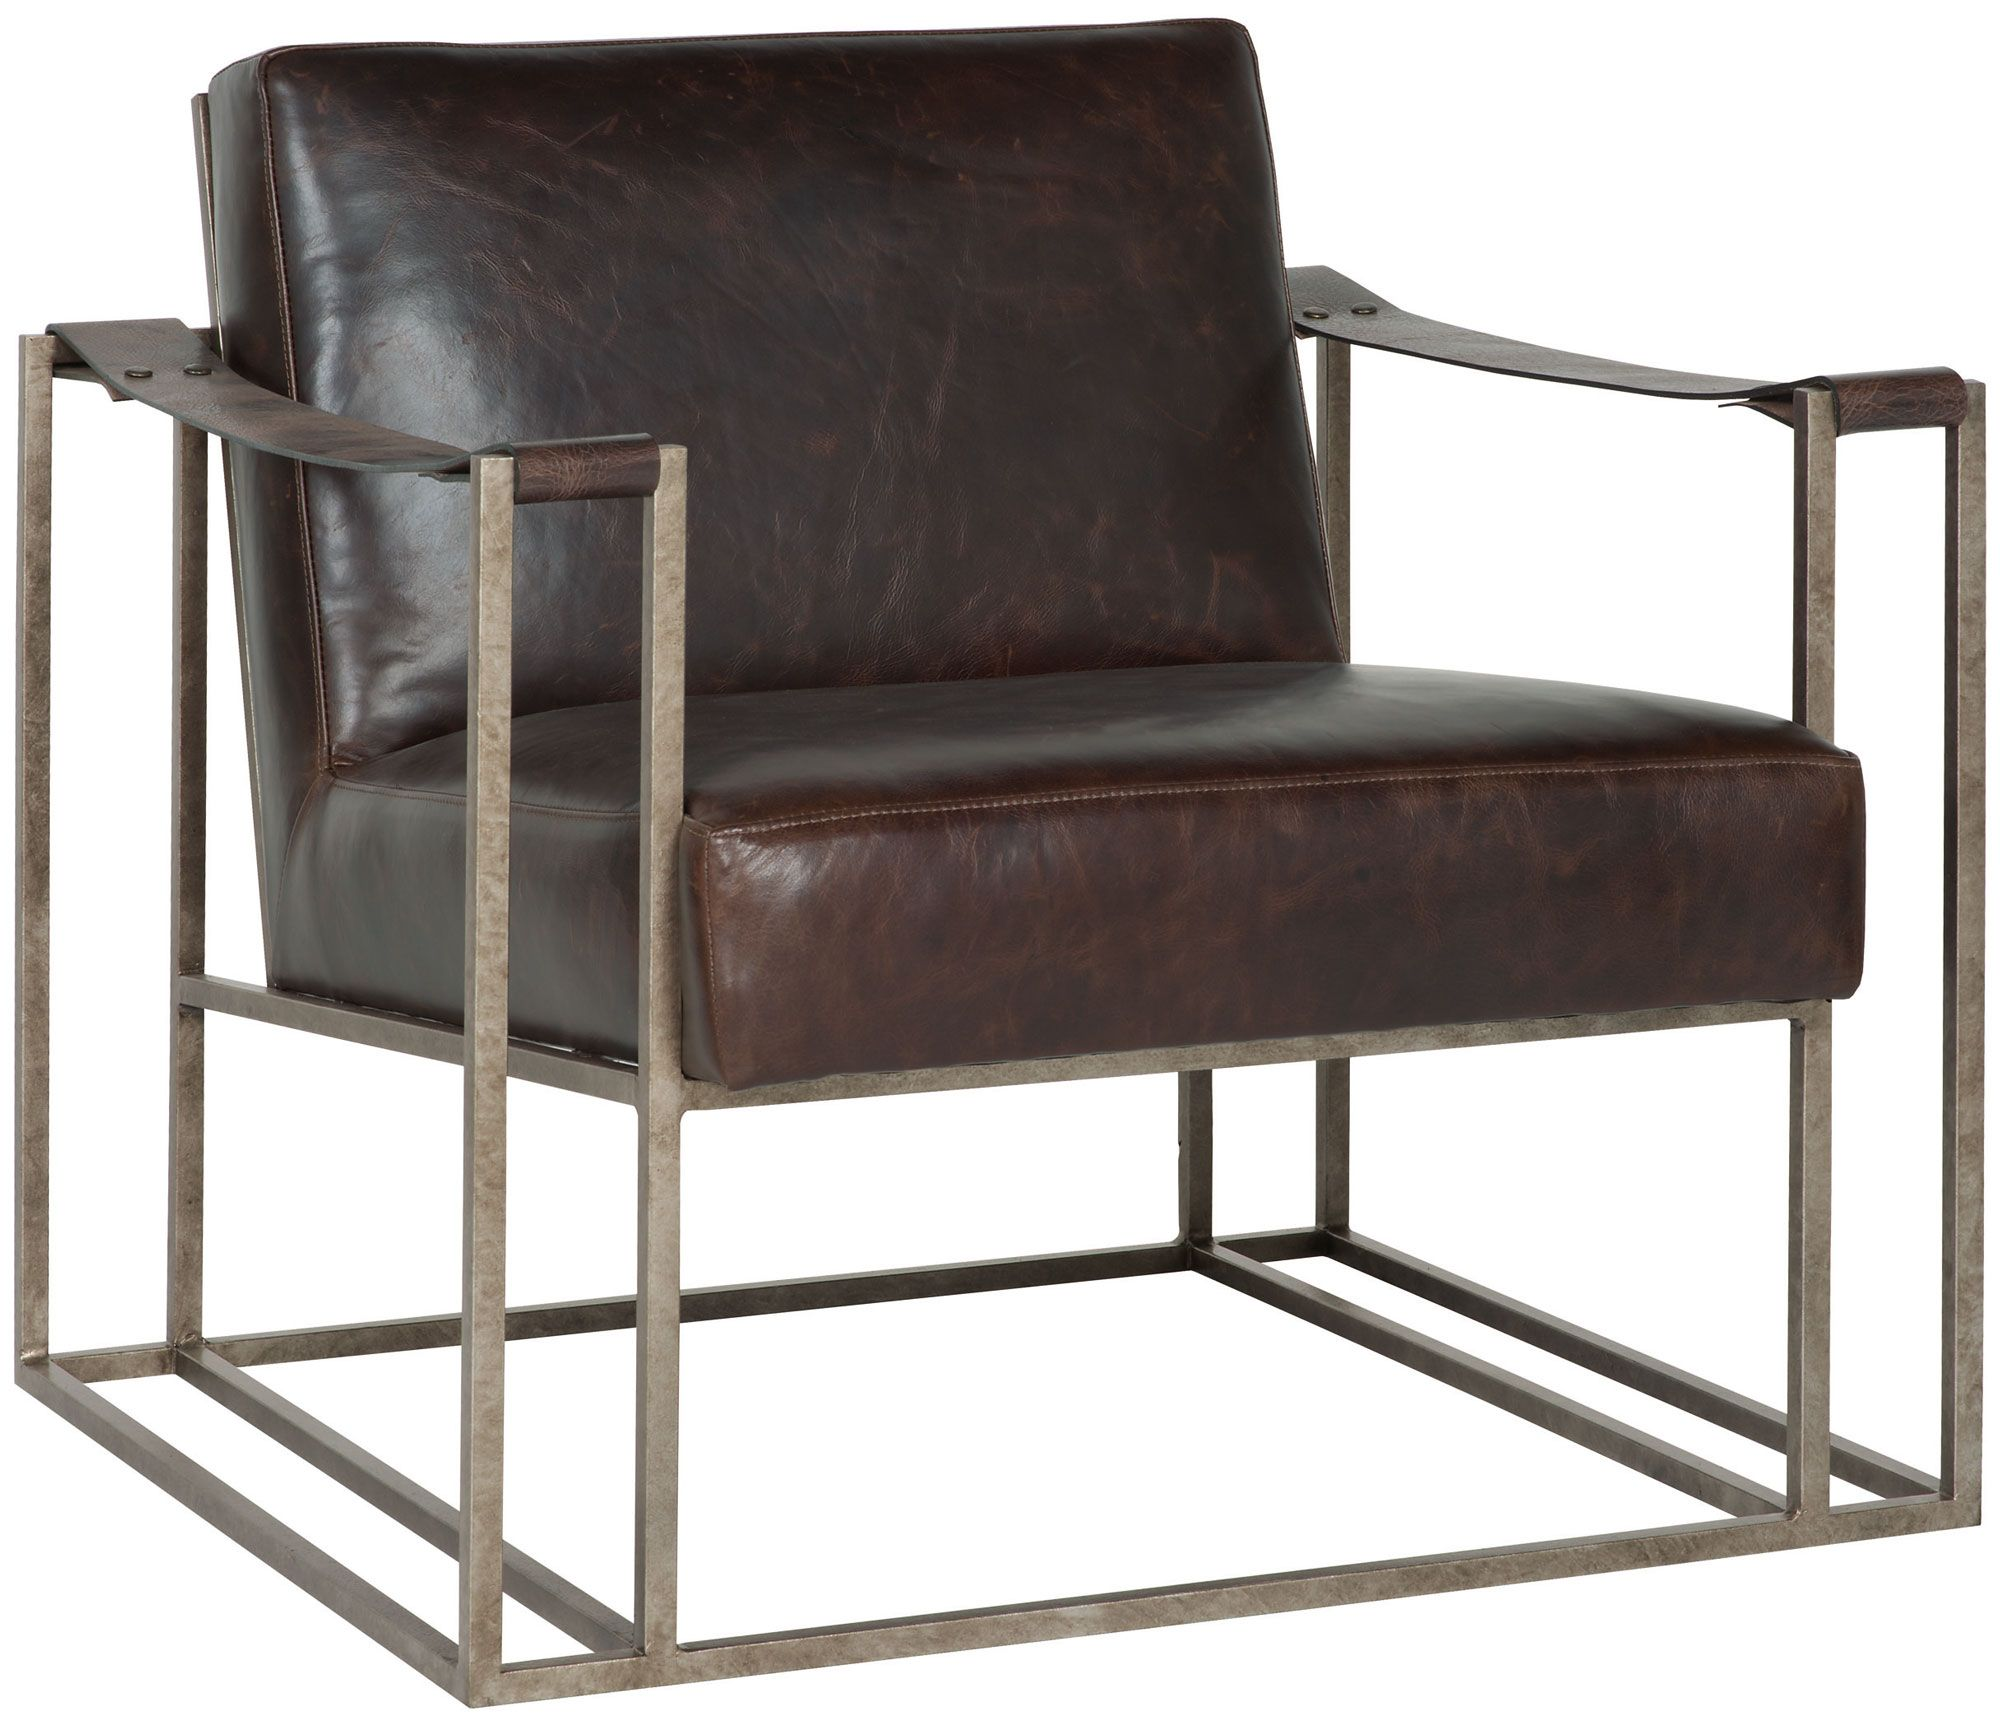 Chair   Bernhardt Paired With An American Leather Sofa Bed Or Room And  Board Sofa In Guest Room/office